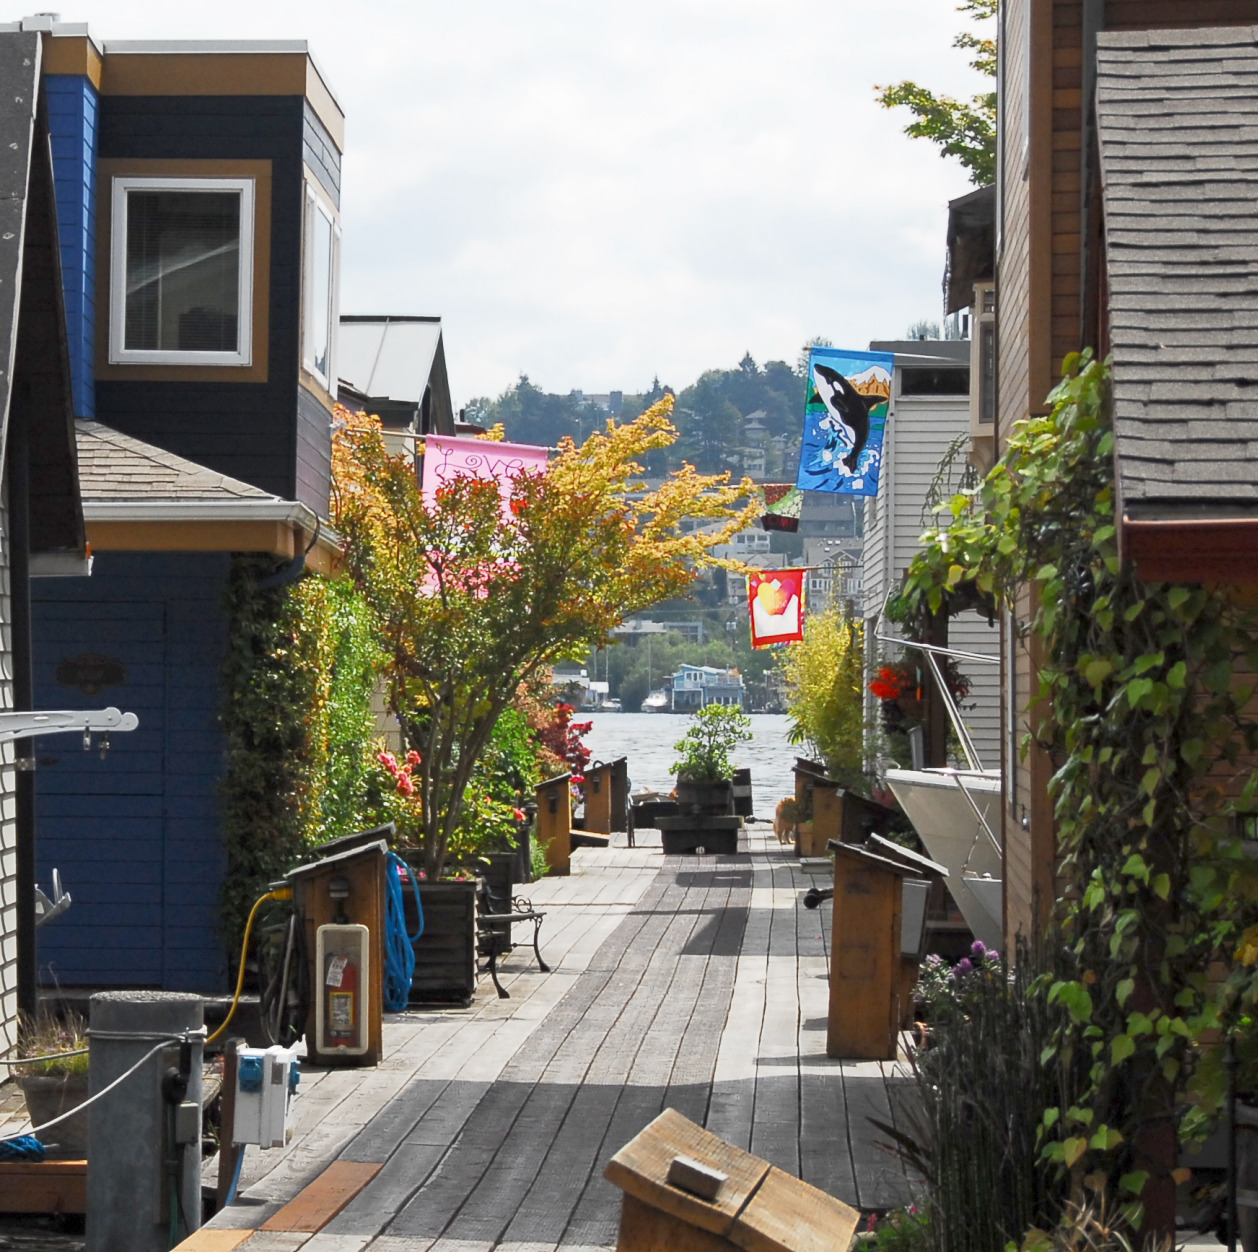 seattle houseboats for sale floating homes for sale on lake union portage bay. Black Bedroom Furniture Sets. Home Design Ideas